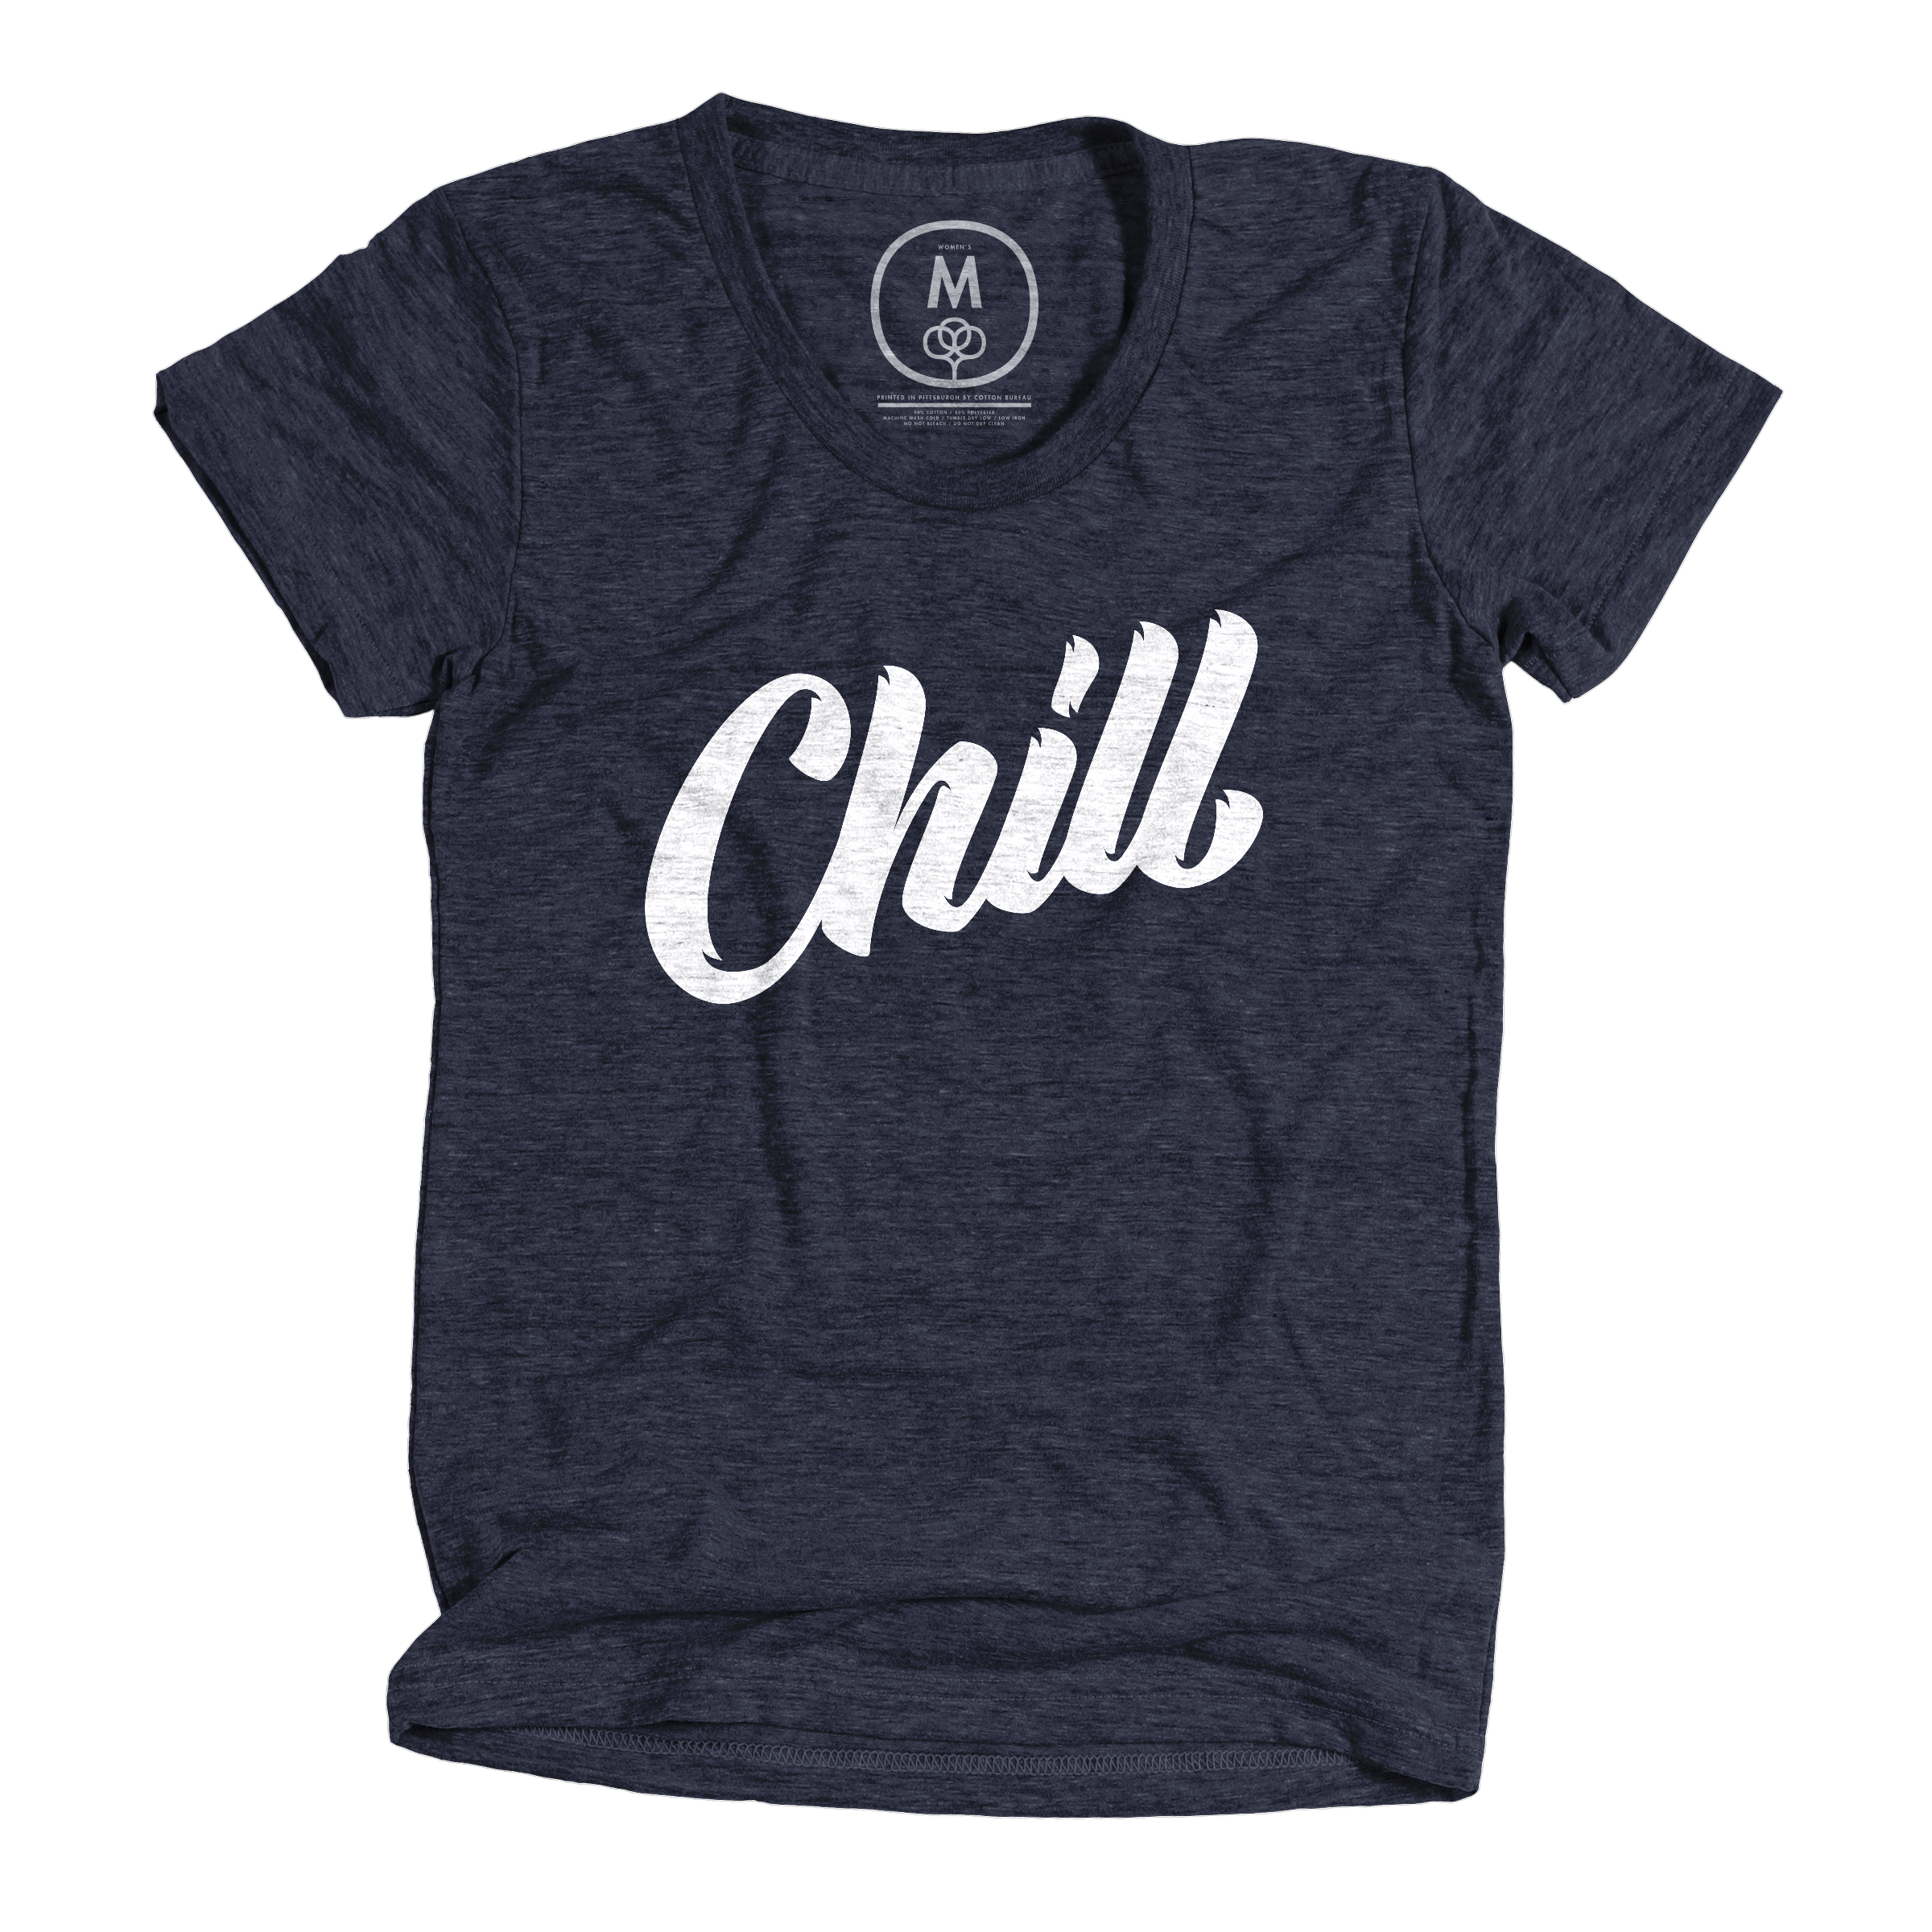 Chill Vintage Navy (Women's)